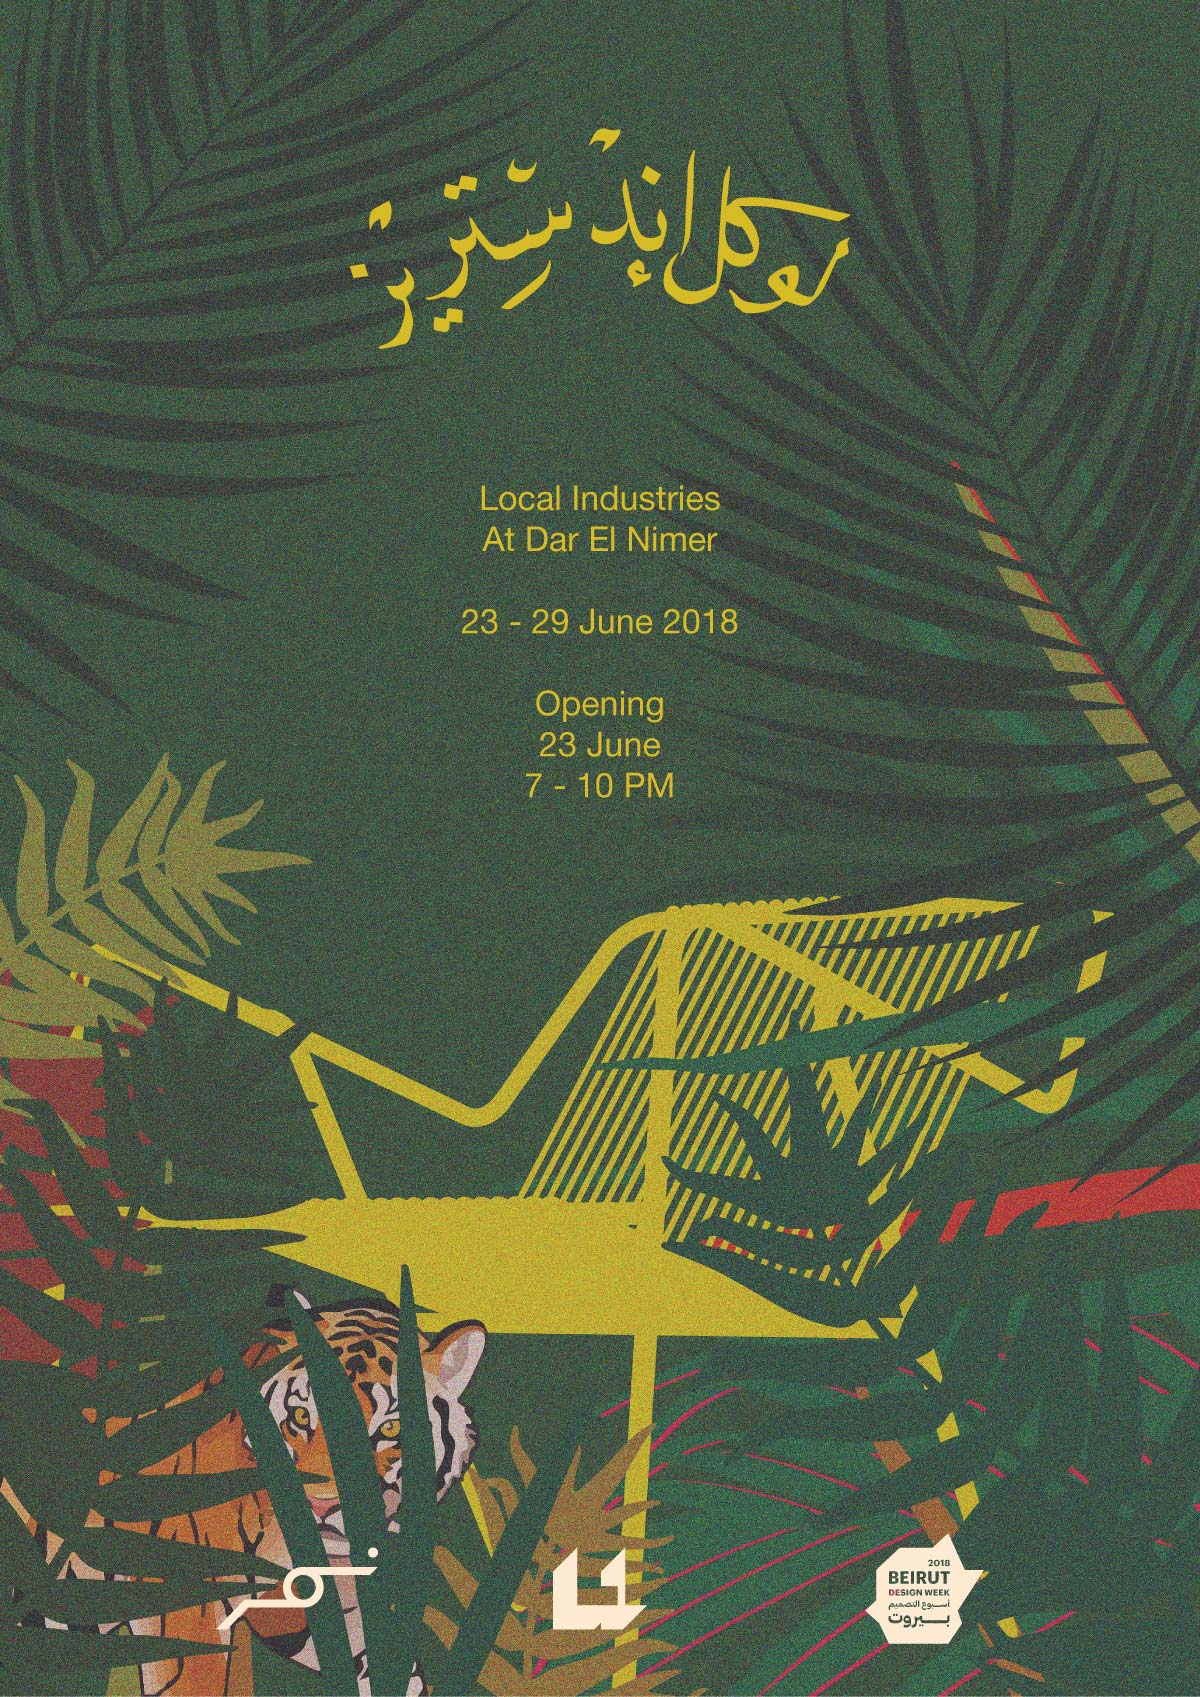 Graphic poster for the exhibition of Local Industries at Dar El Nimer during Beirut Design Week 2018. © 2018 Local Industries